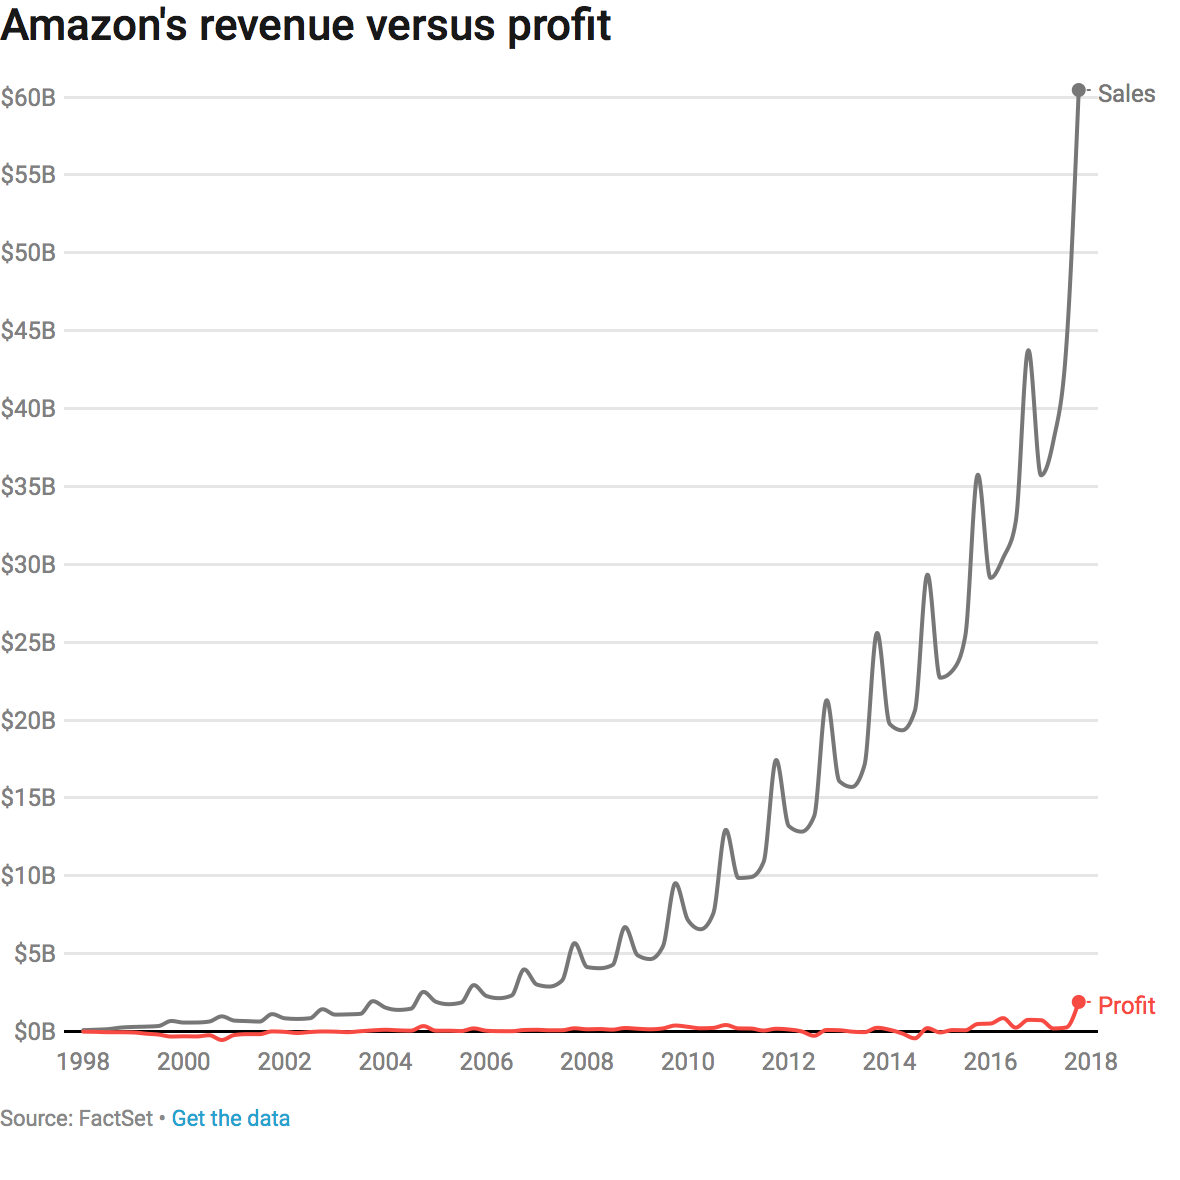 Amazon has posted a profit for 11 straight quarters including a amazon revenue versus profit nvjuhfo Gallery